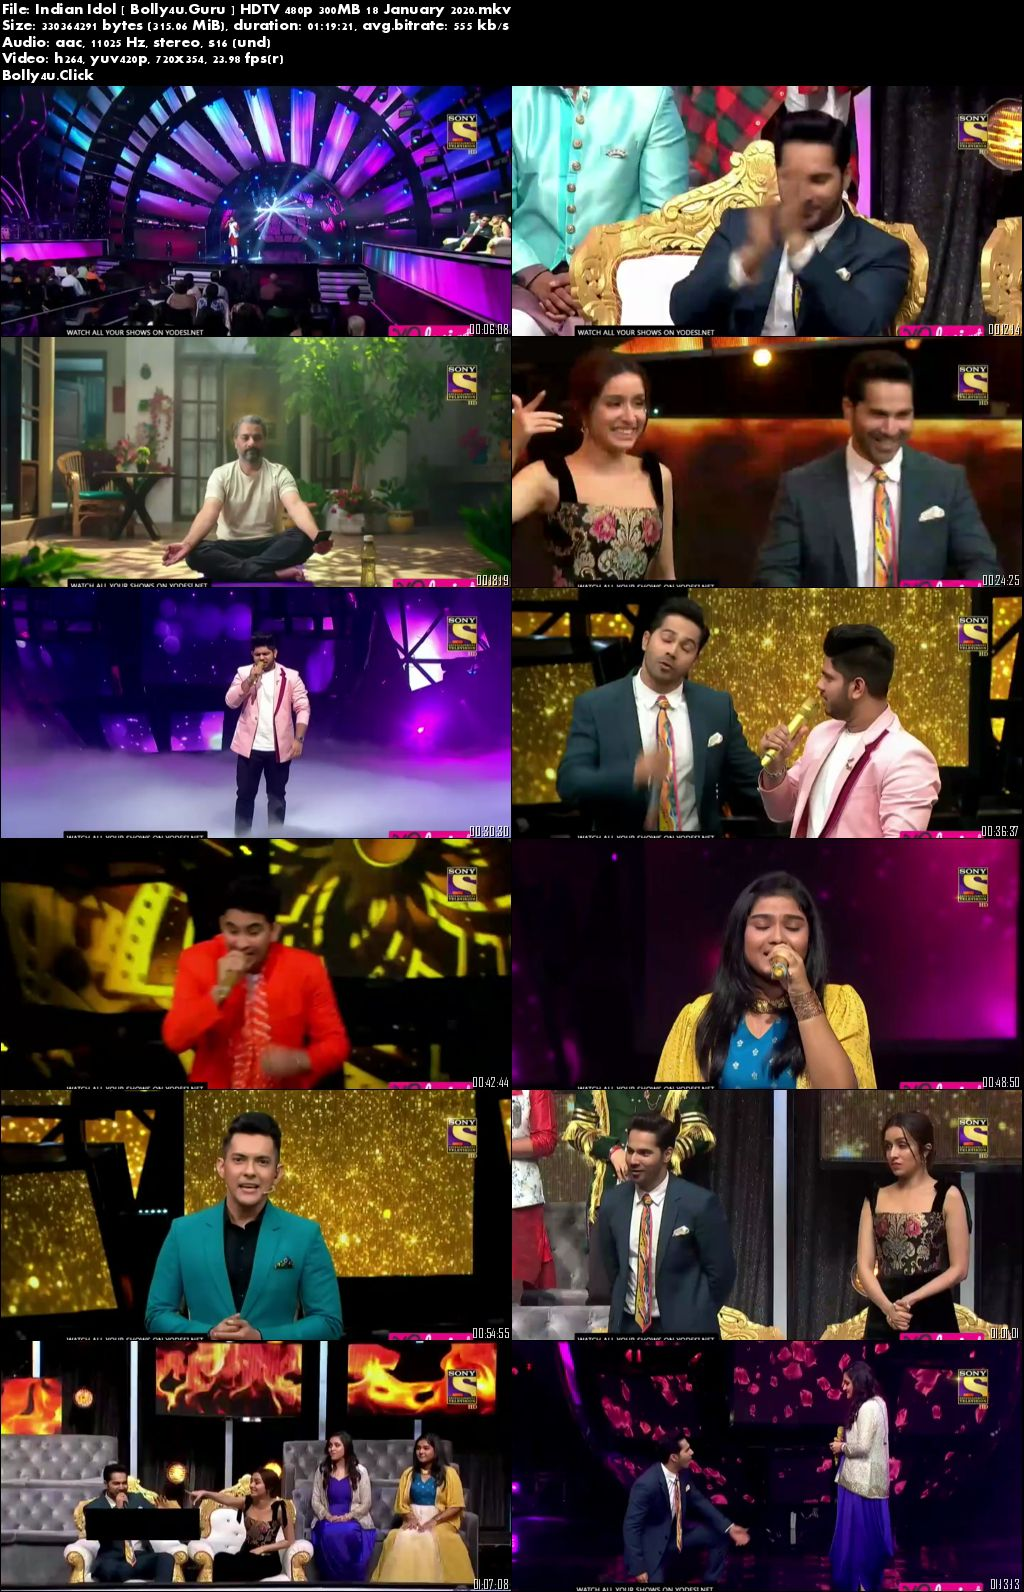 Indian Idol 2019 HDTV 480p 300MB 18 January 2020